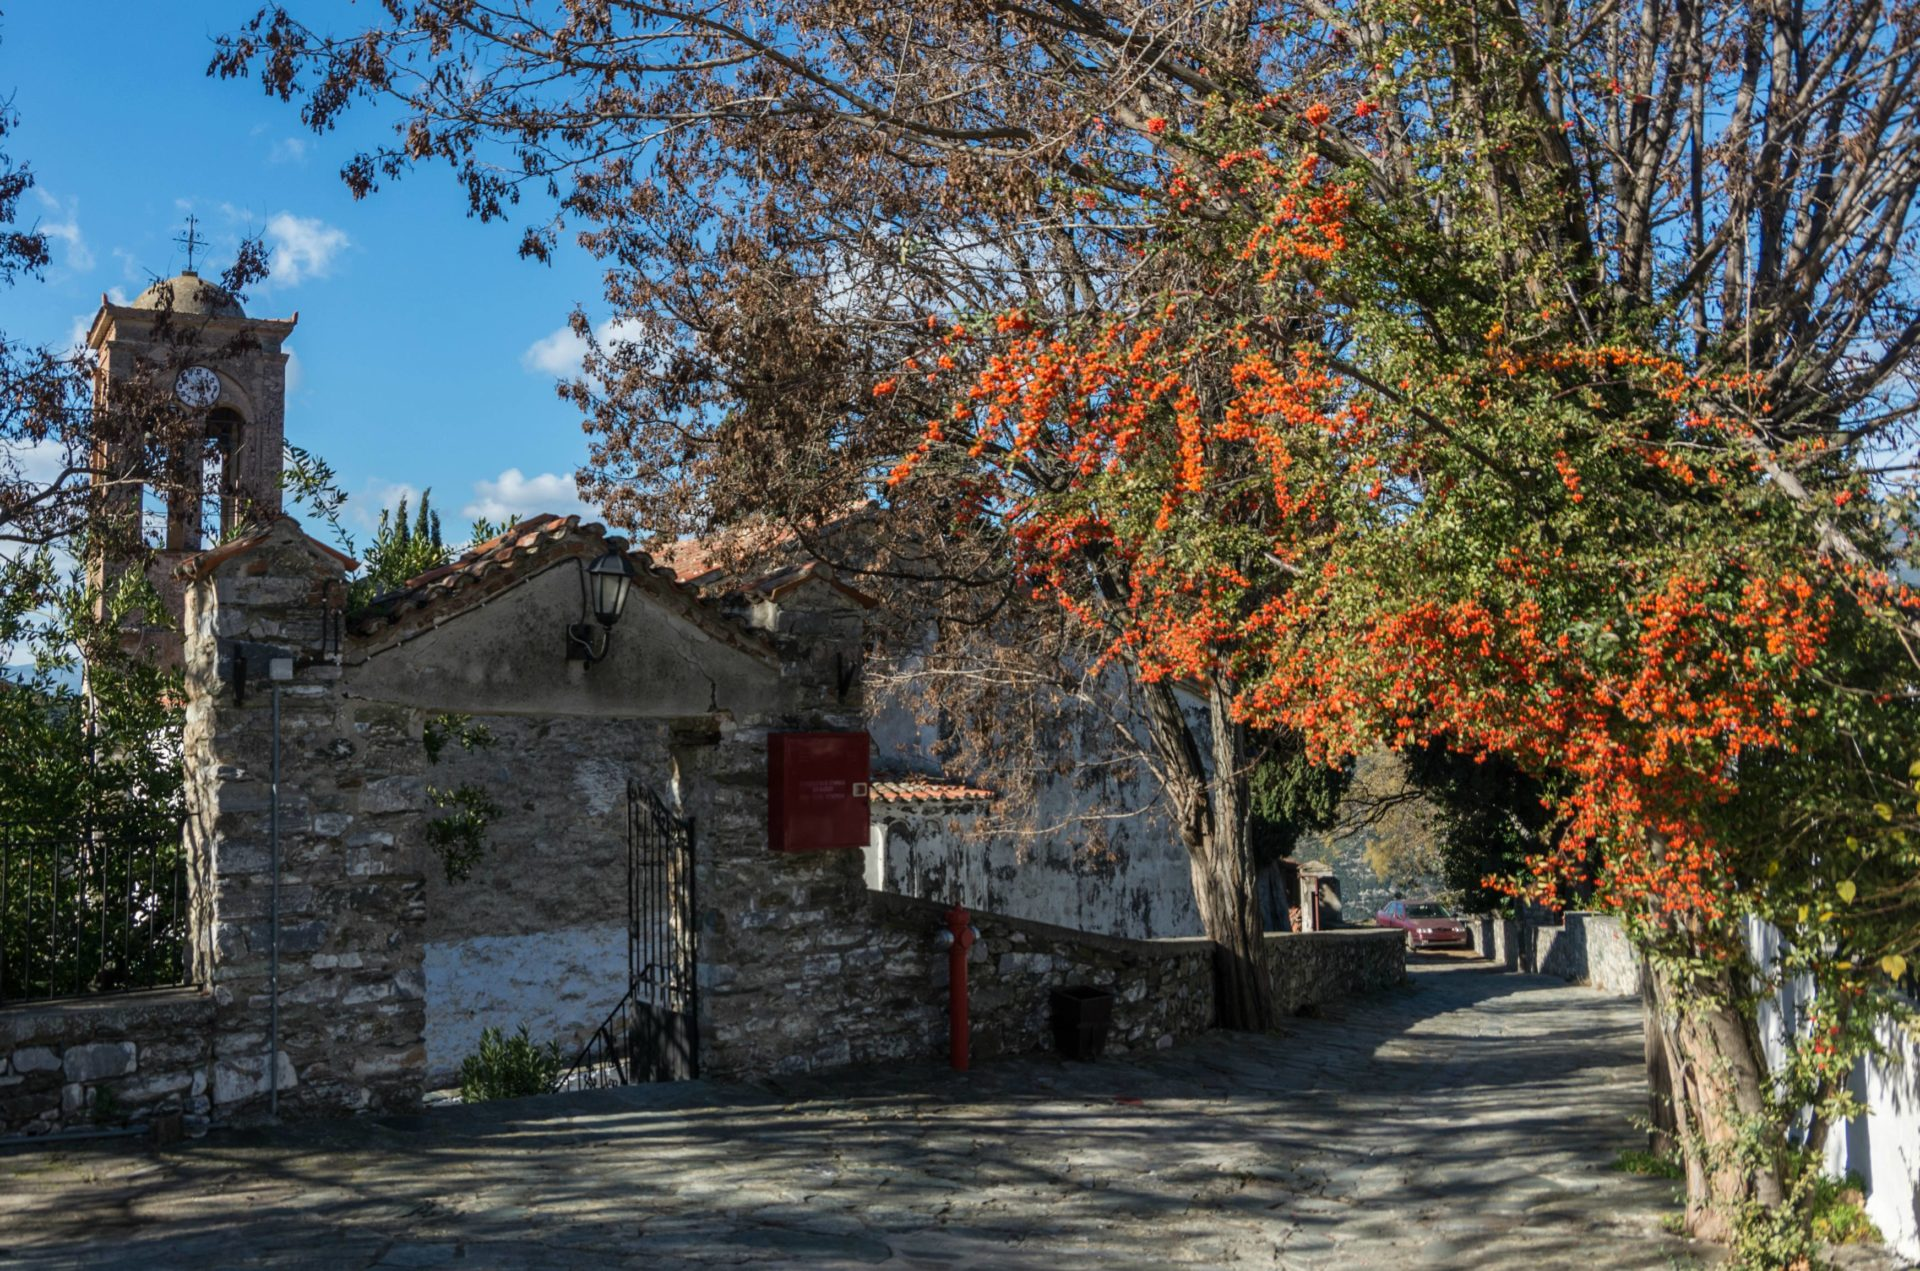 Ampelakia has some of the cheapest homes in Greece in the central region